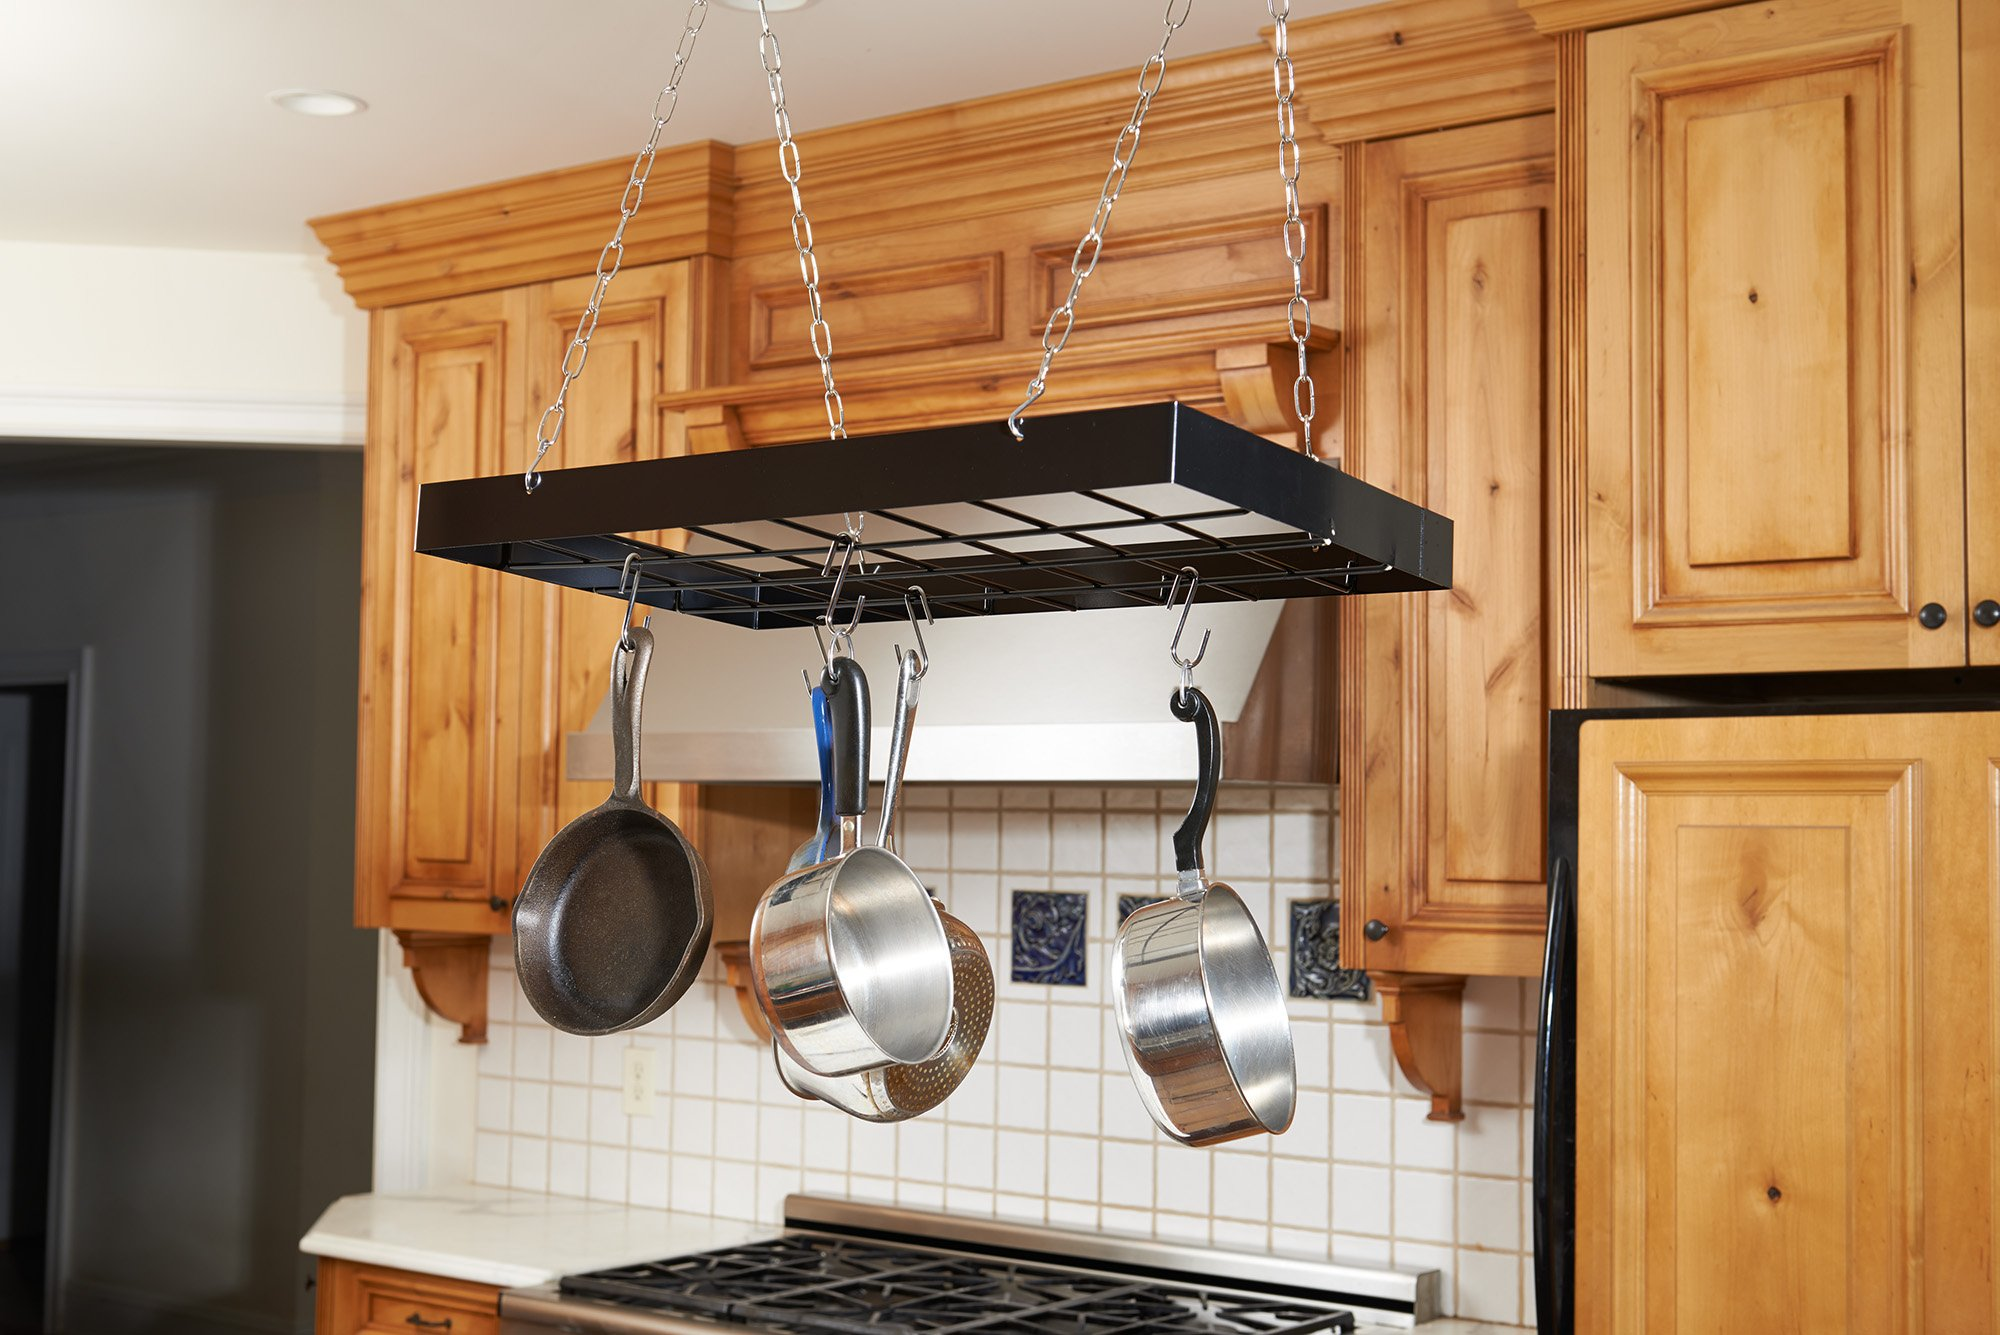 pot at andwiths alluring ceiling absorbing hanging with trendy storage racks rack pots pan build fnqzss kitchen home depot furnitures lighted plus